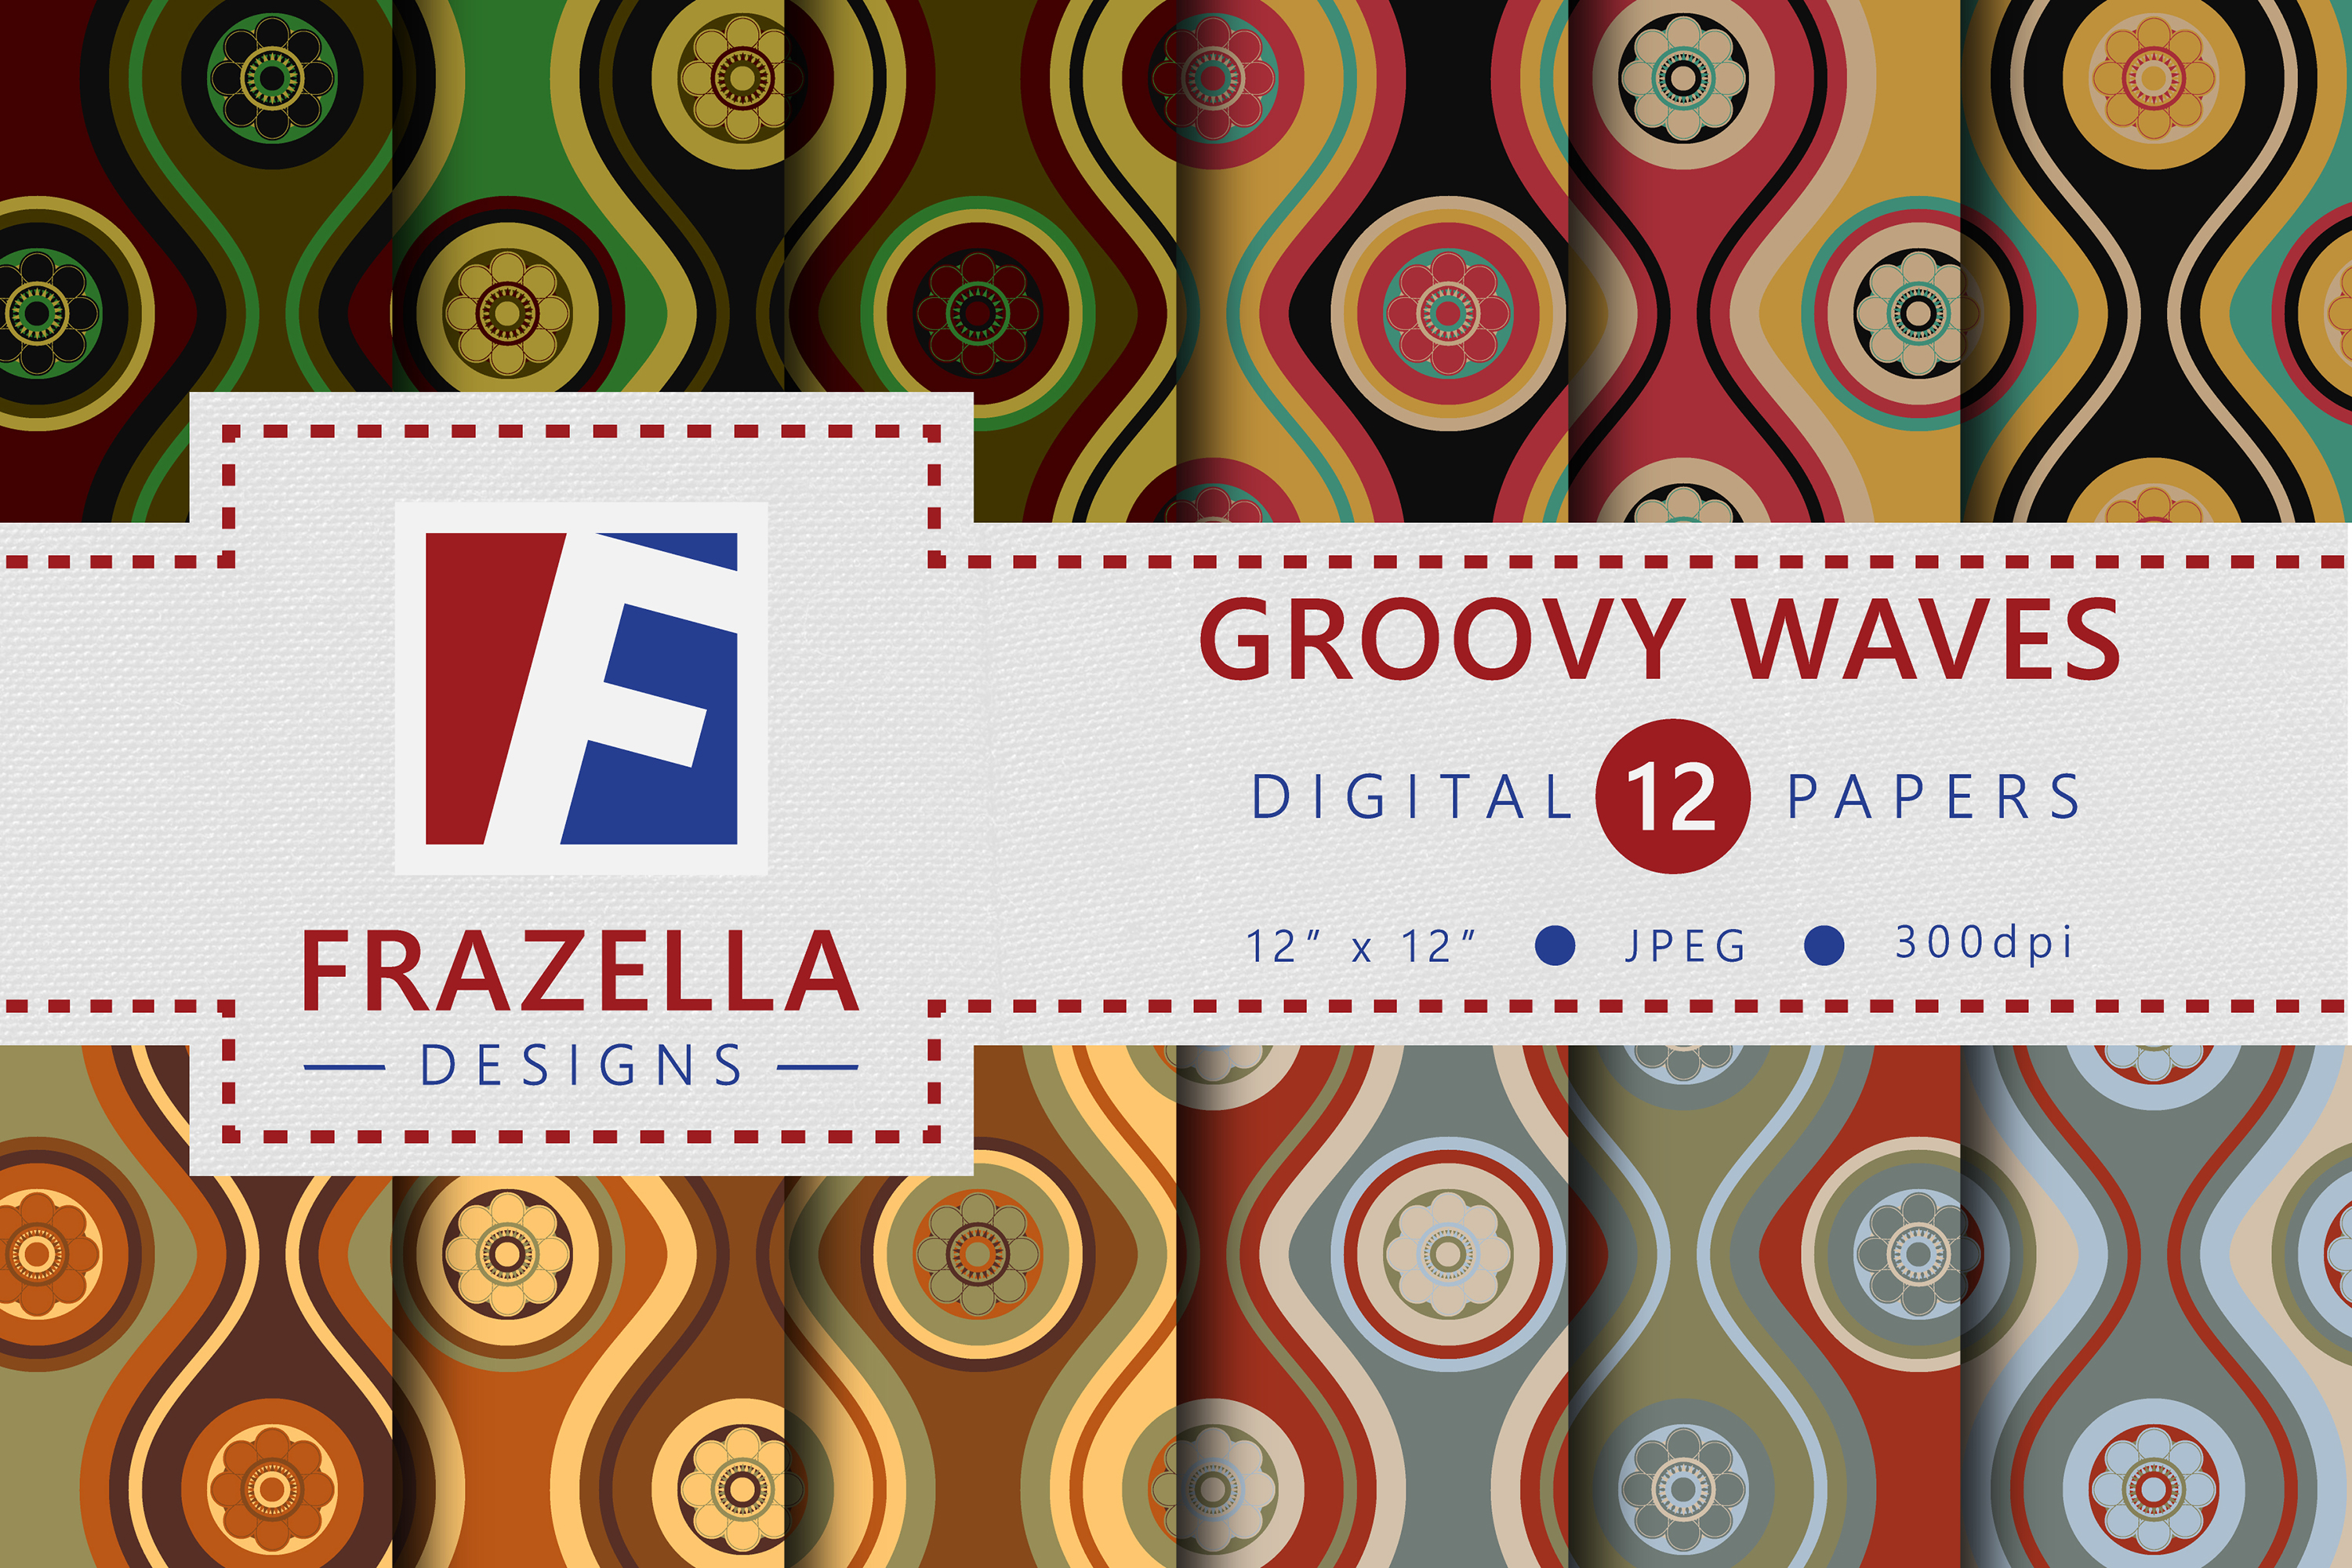 The ULTIMATE Digital Paper Collection Retro Edition Vol. 3. example image 7